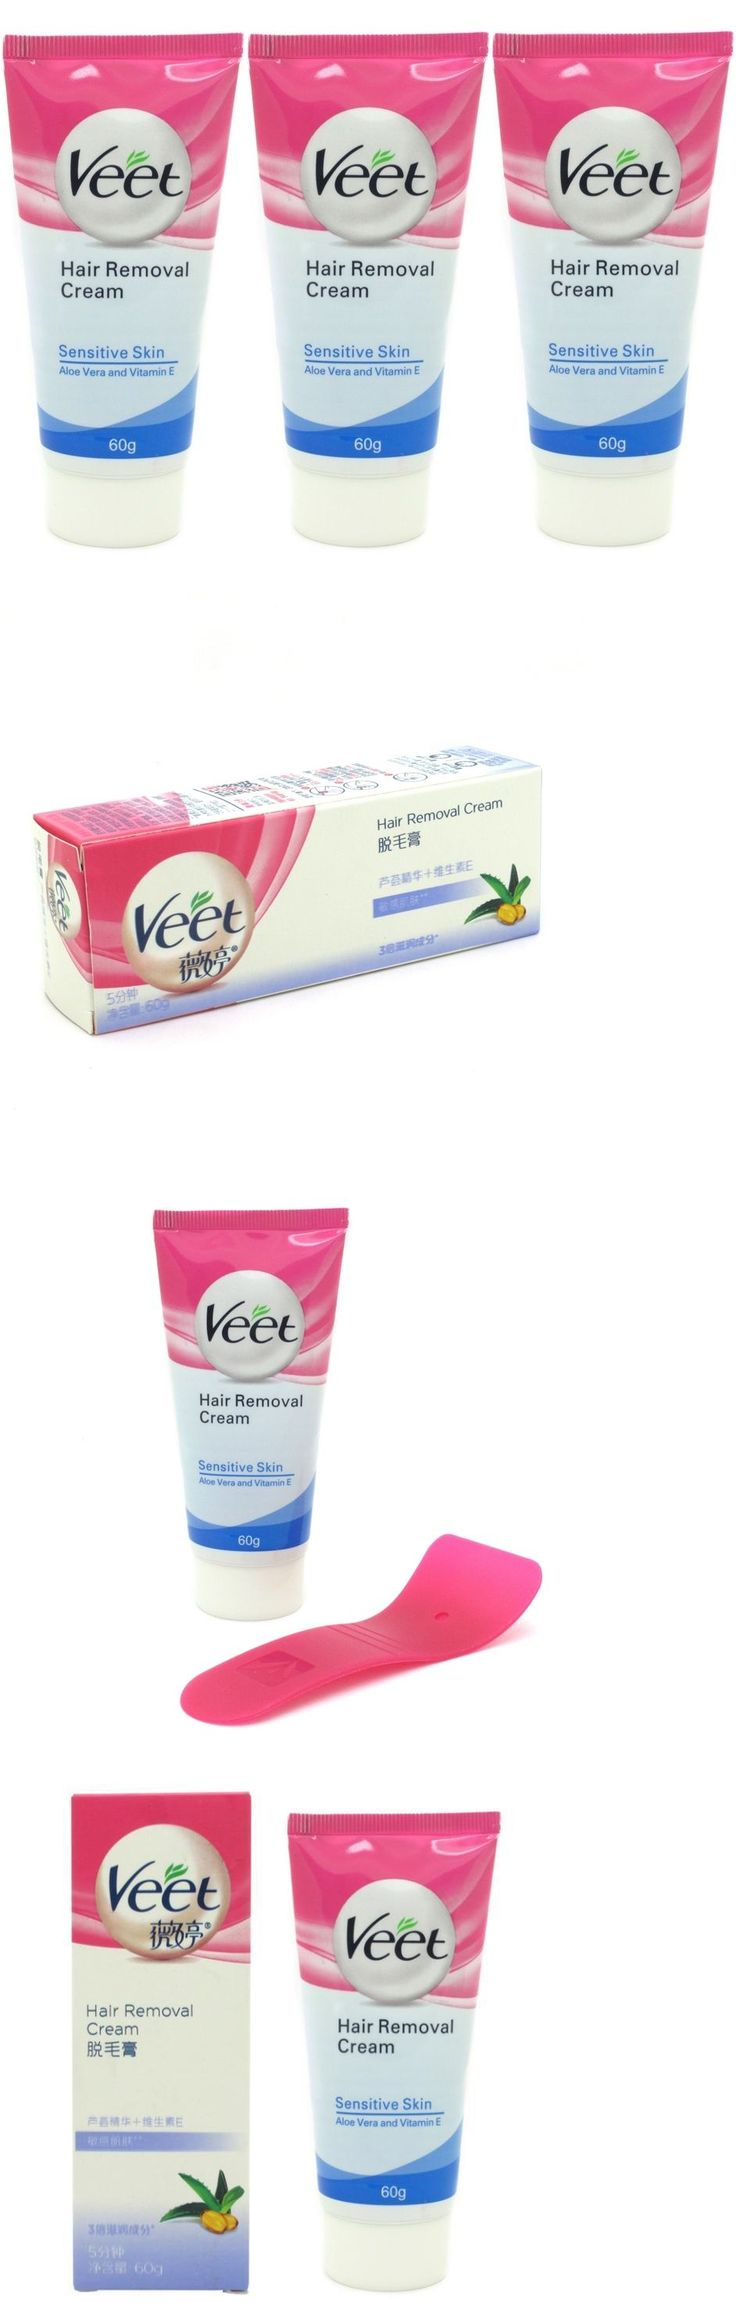 Hair Removal Creams and Sprays: 3 Units # Veet Aloe Permanent Fast Depilatory Shaving Hair Removal Cream 180G -> BUY IT NOW ONLY: $32.49 on eBay!